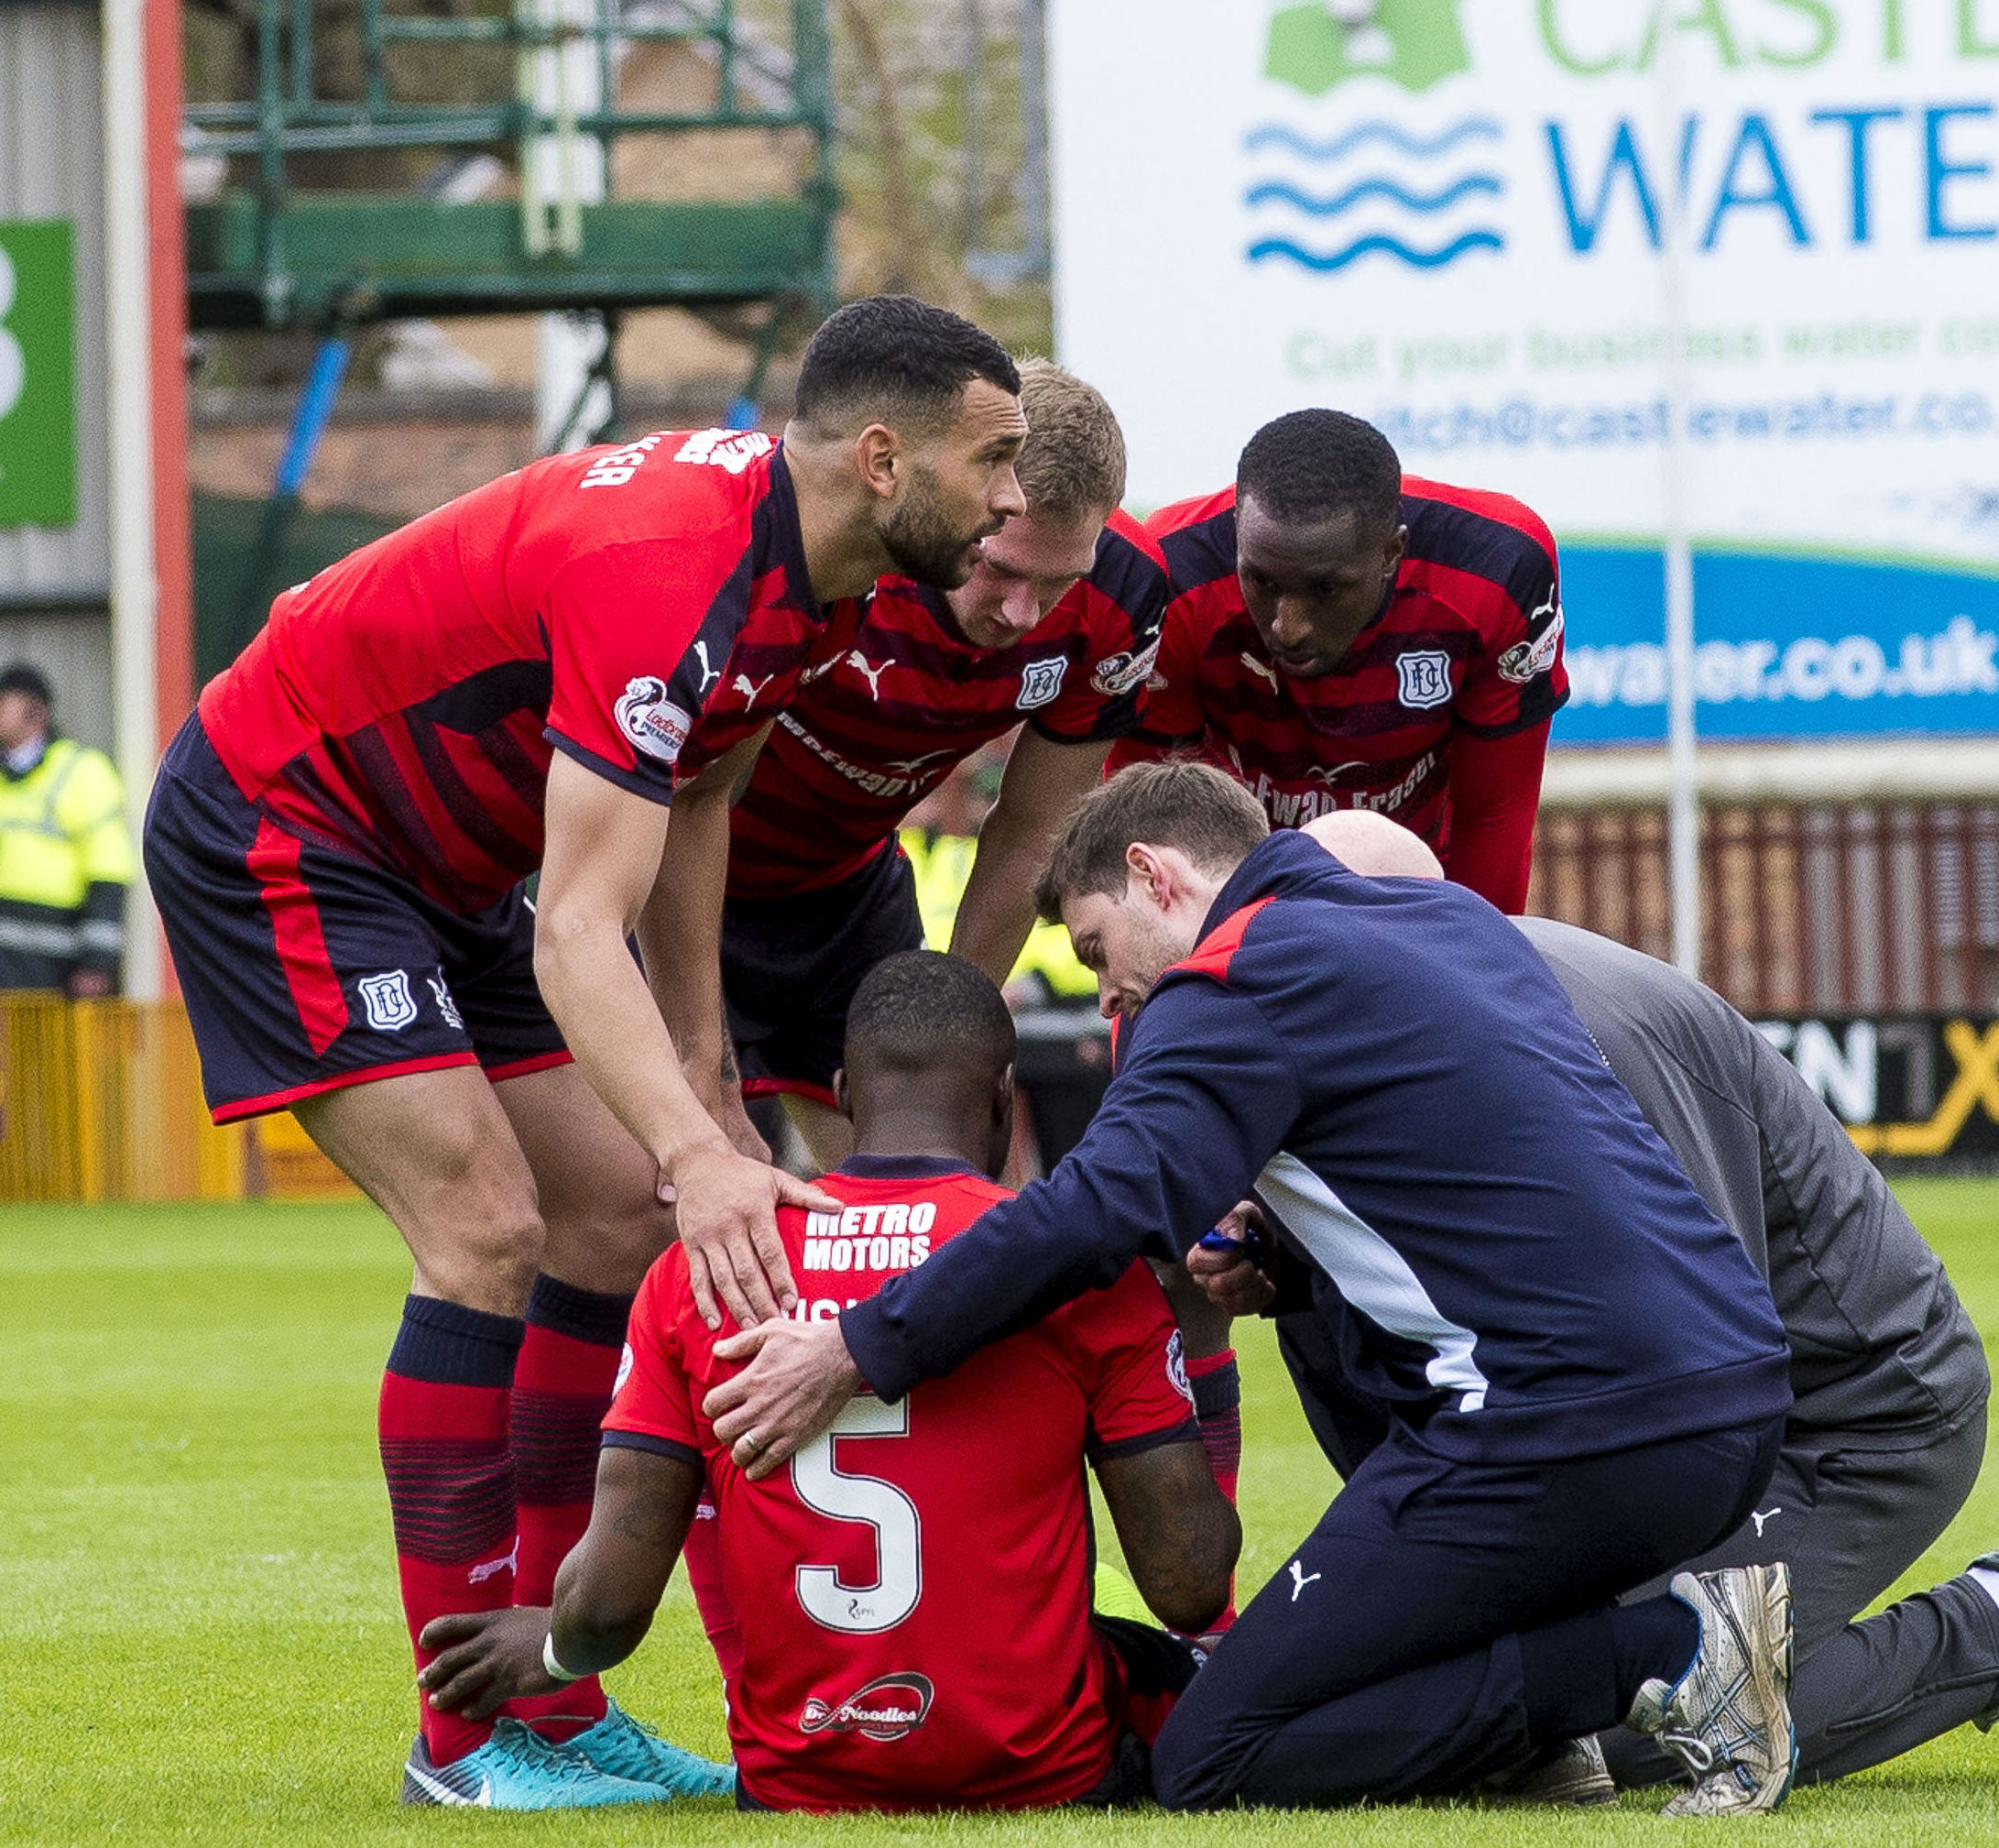 Dundee's Genseric Kusunga before being stretchered off.